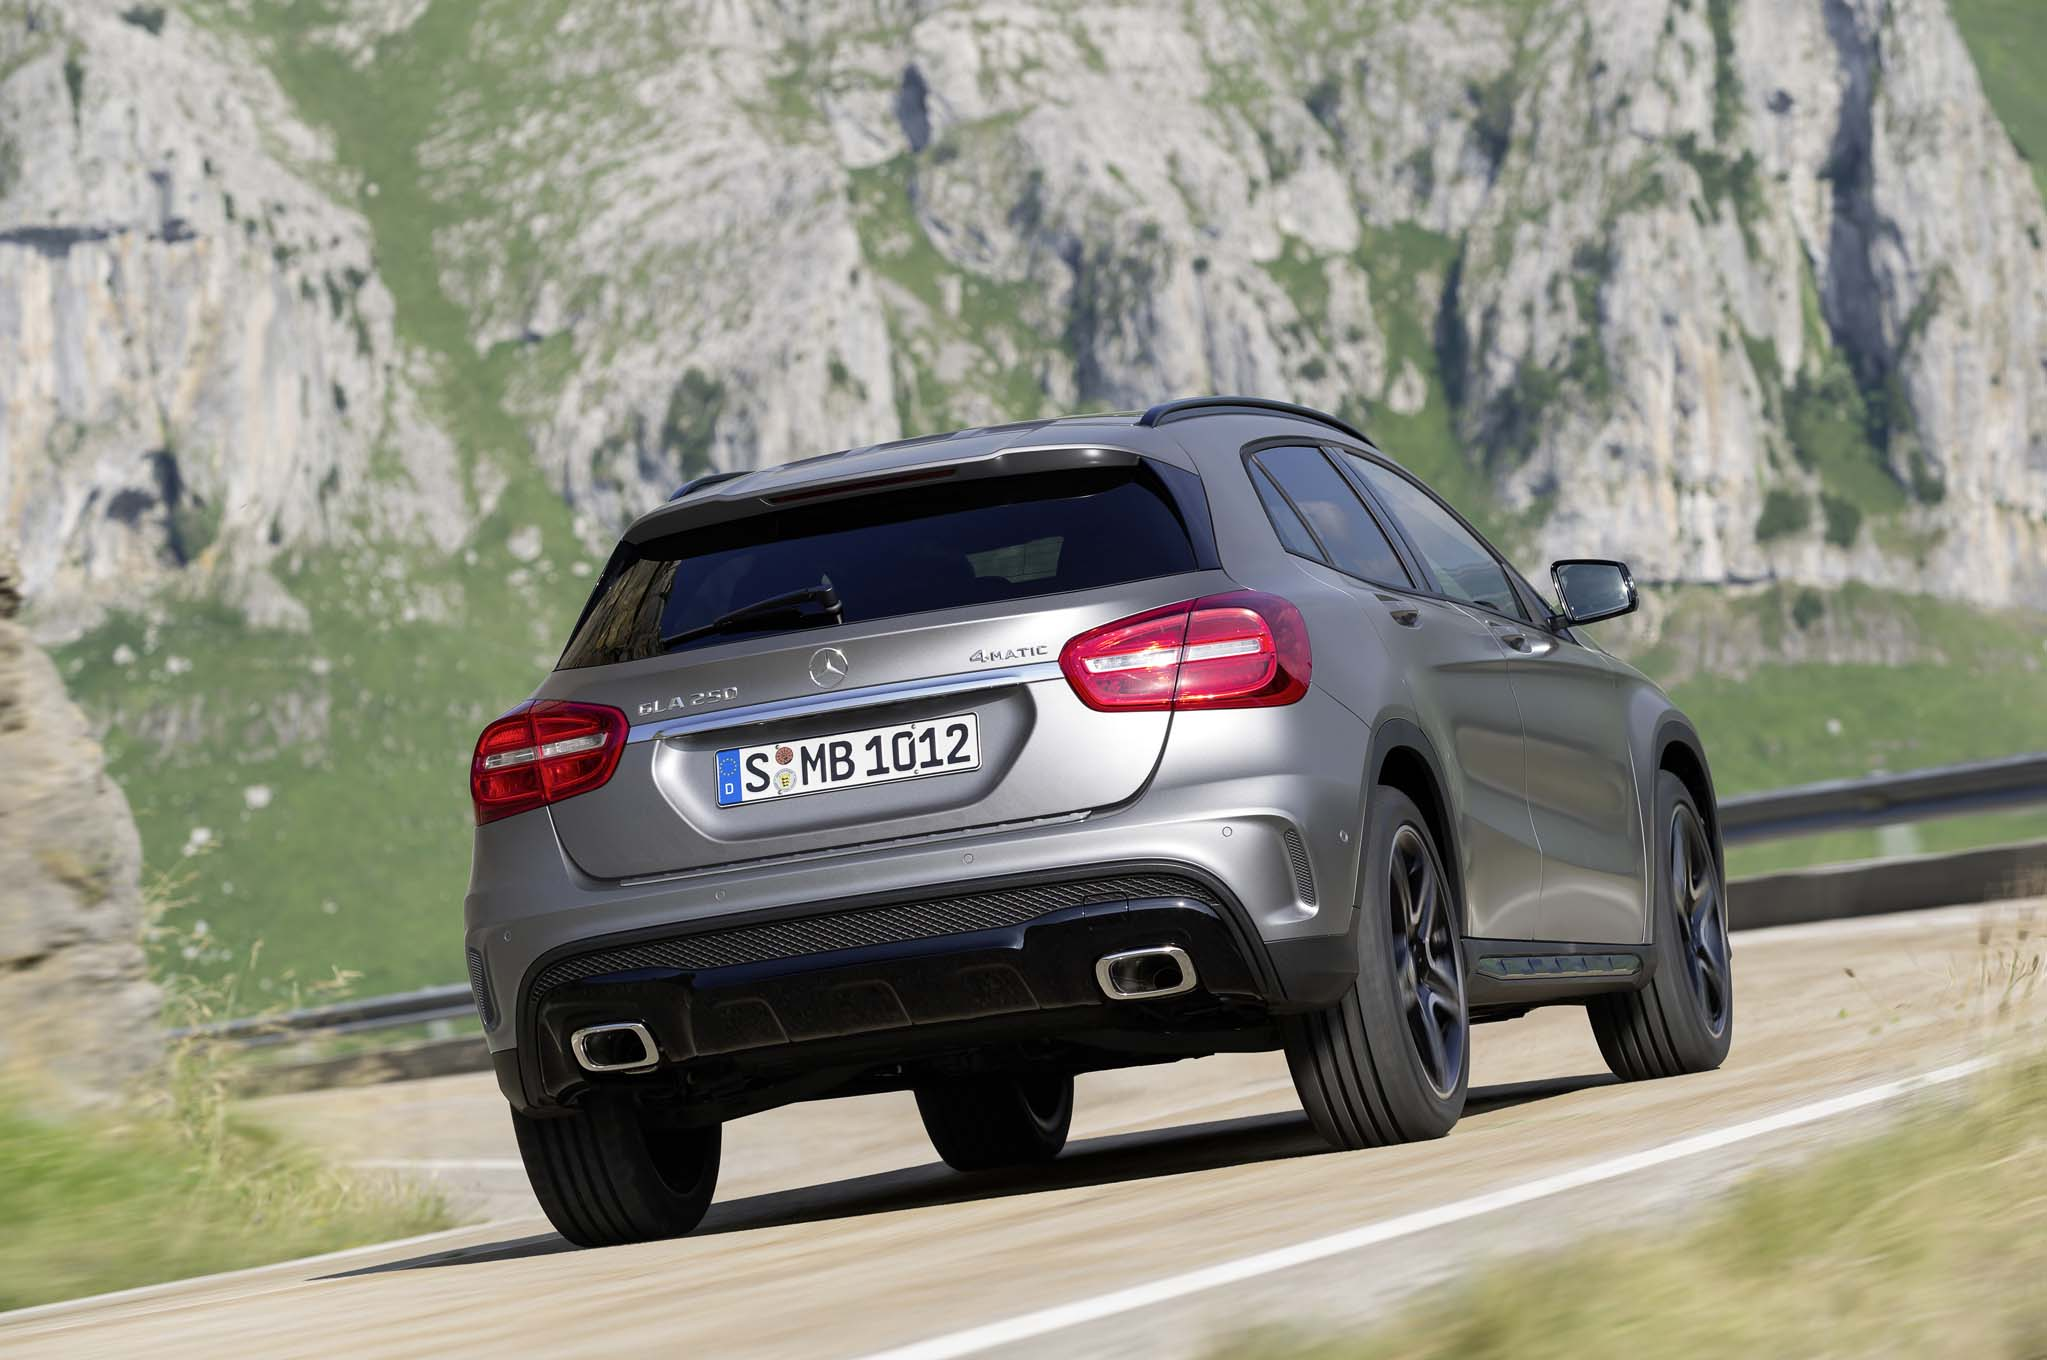 2015 mercedes benz gla class starts at 32 225 gla45 amg for Mercedes benz gla 2015 price